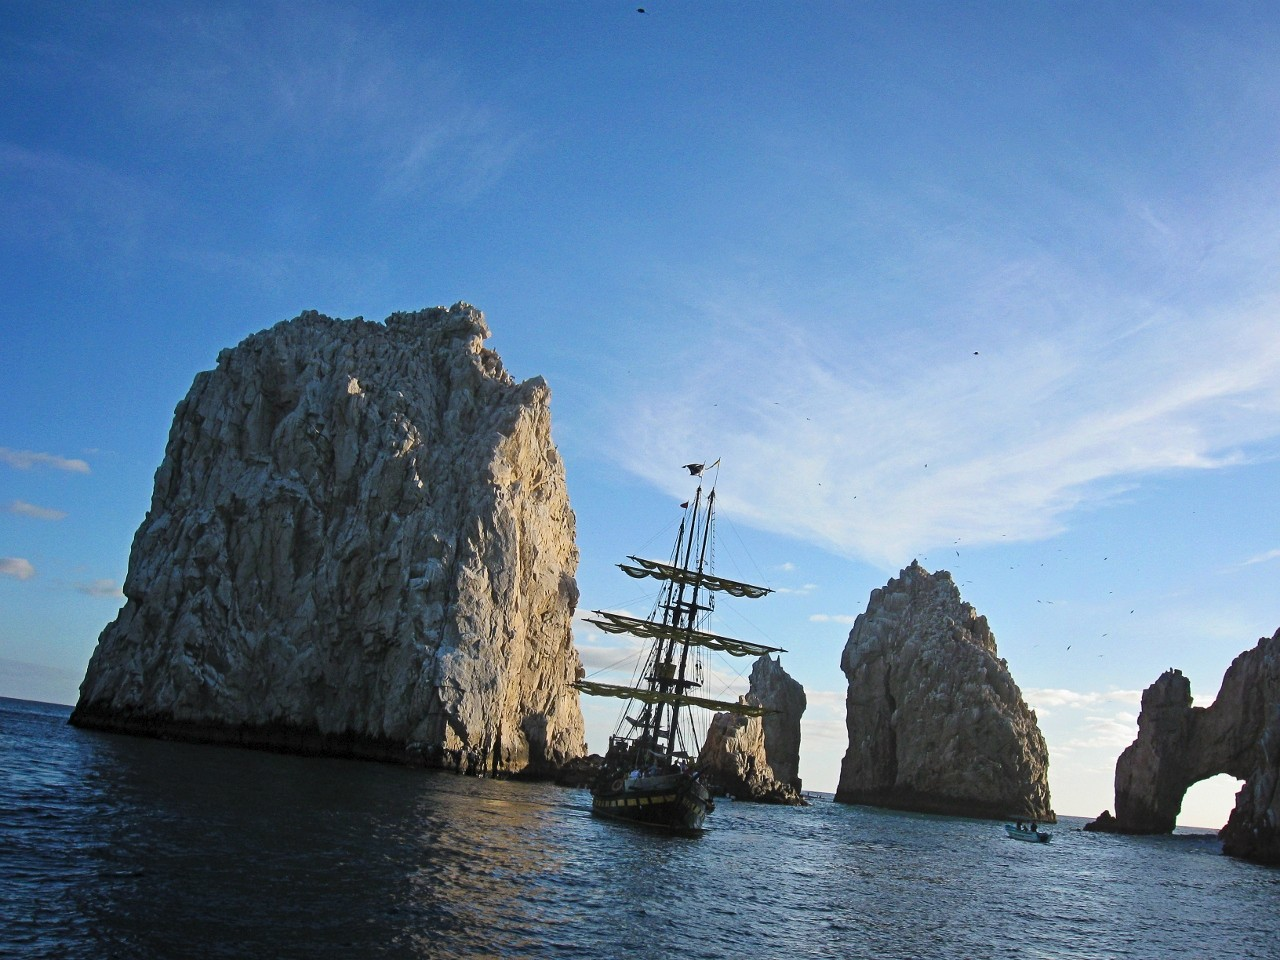 Cabo San Lucas, Baja California Sur, Mexico, Pirate ship, sailing, Buccaneer Queen in Cabo